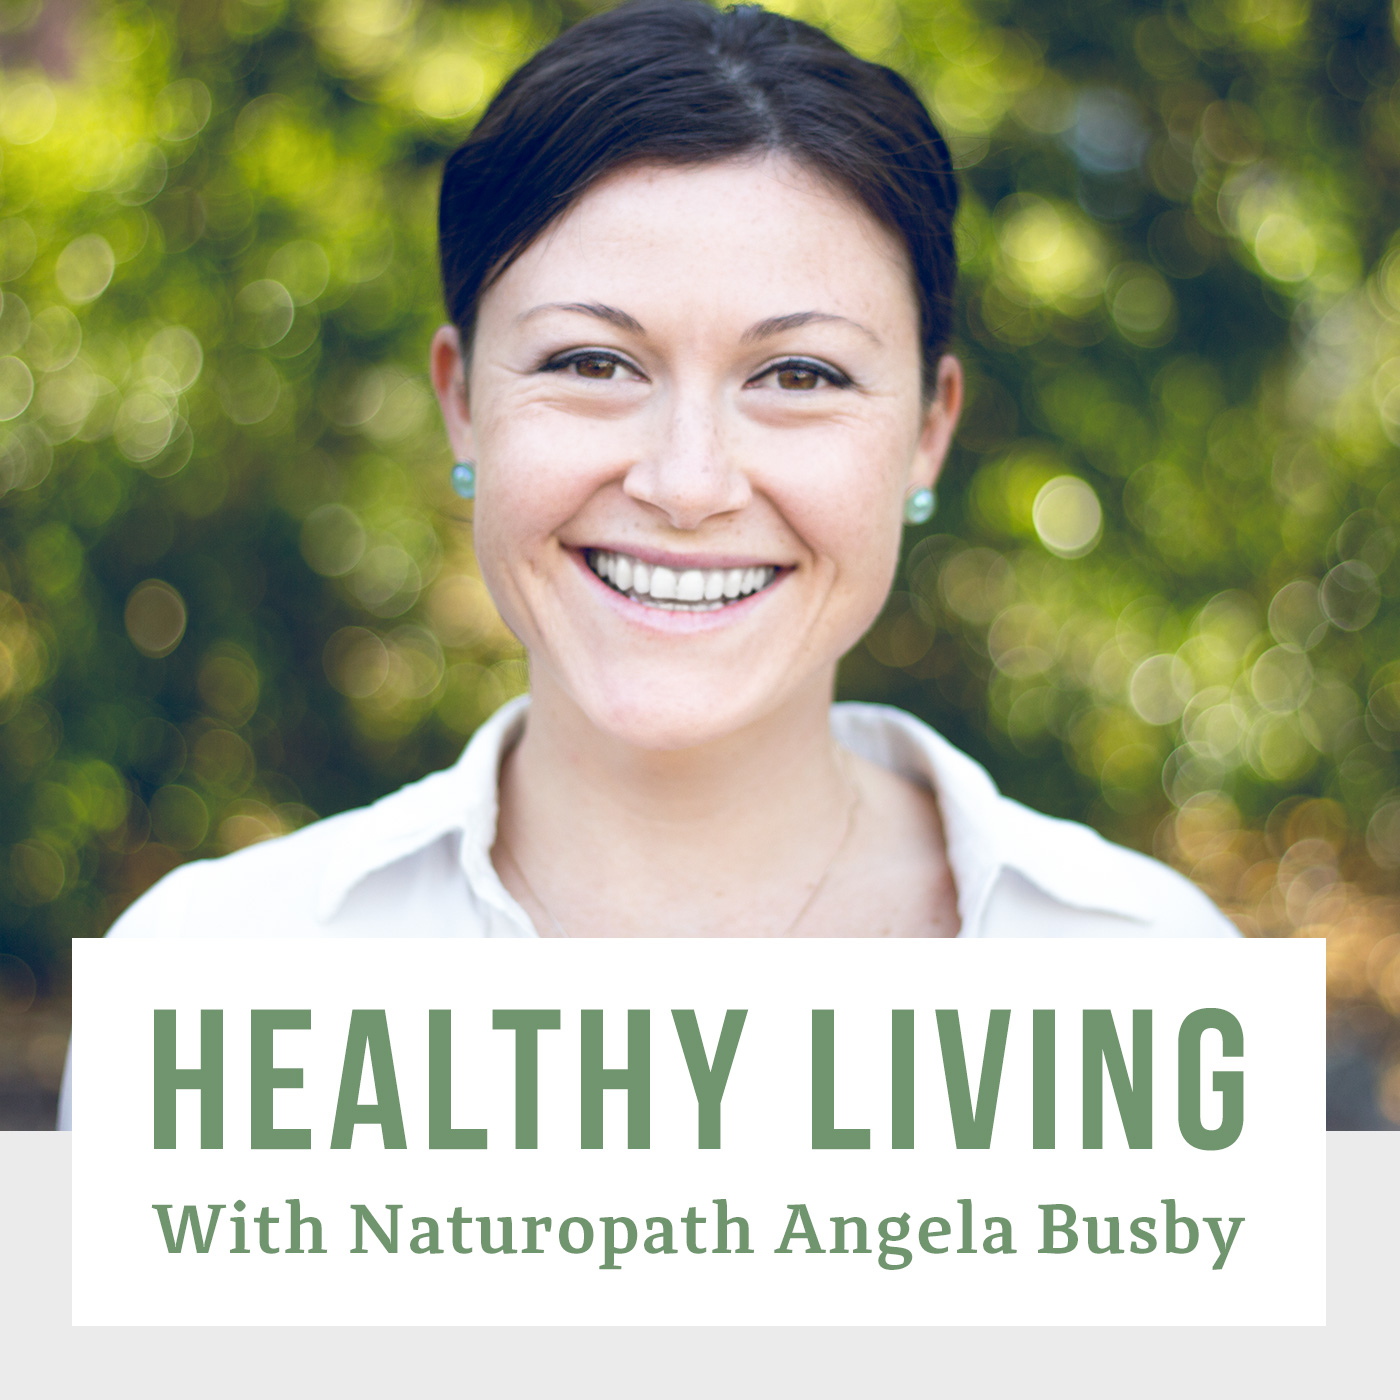 Healthy Living With Naturopath Angela Busby - Your Health